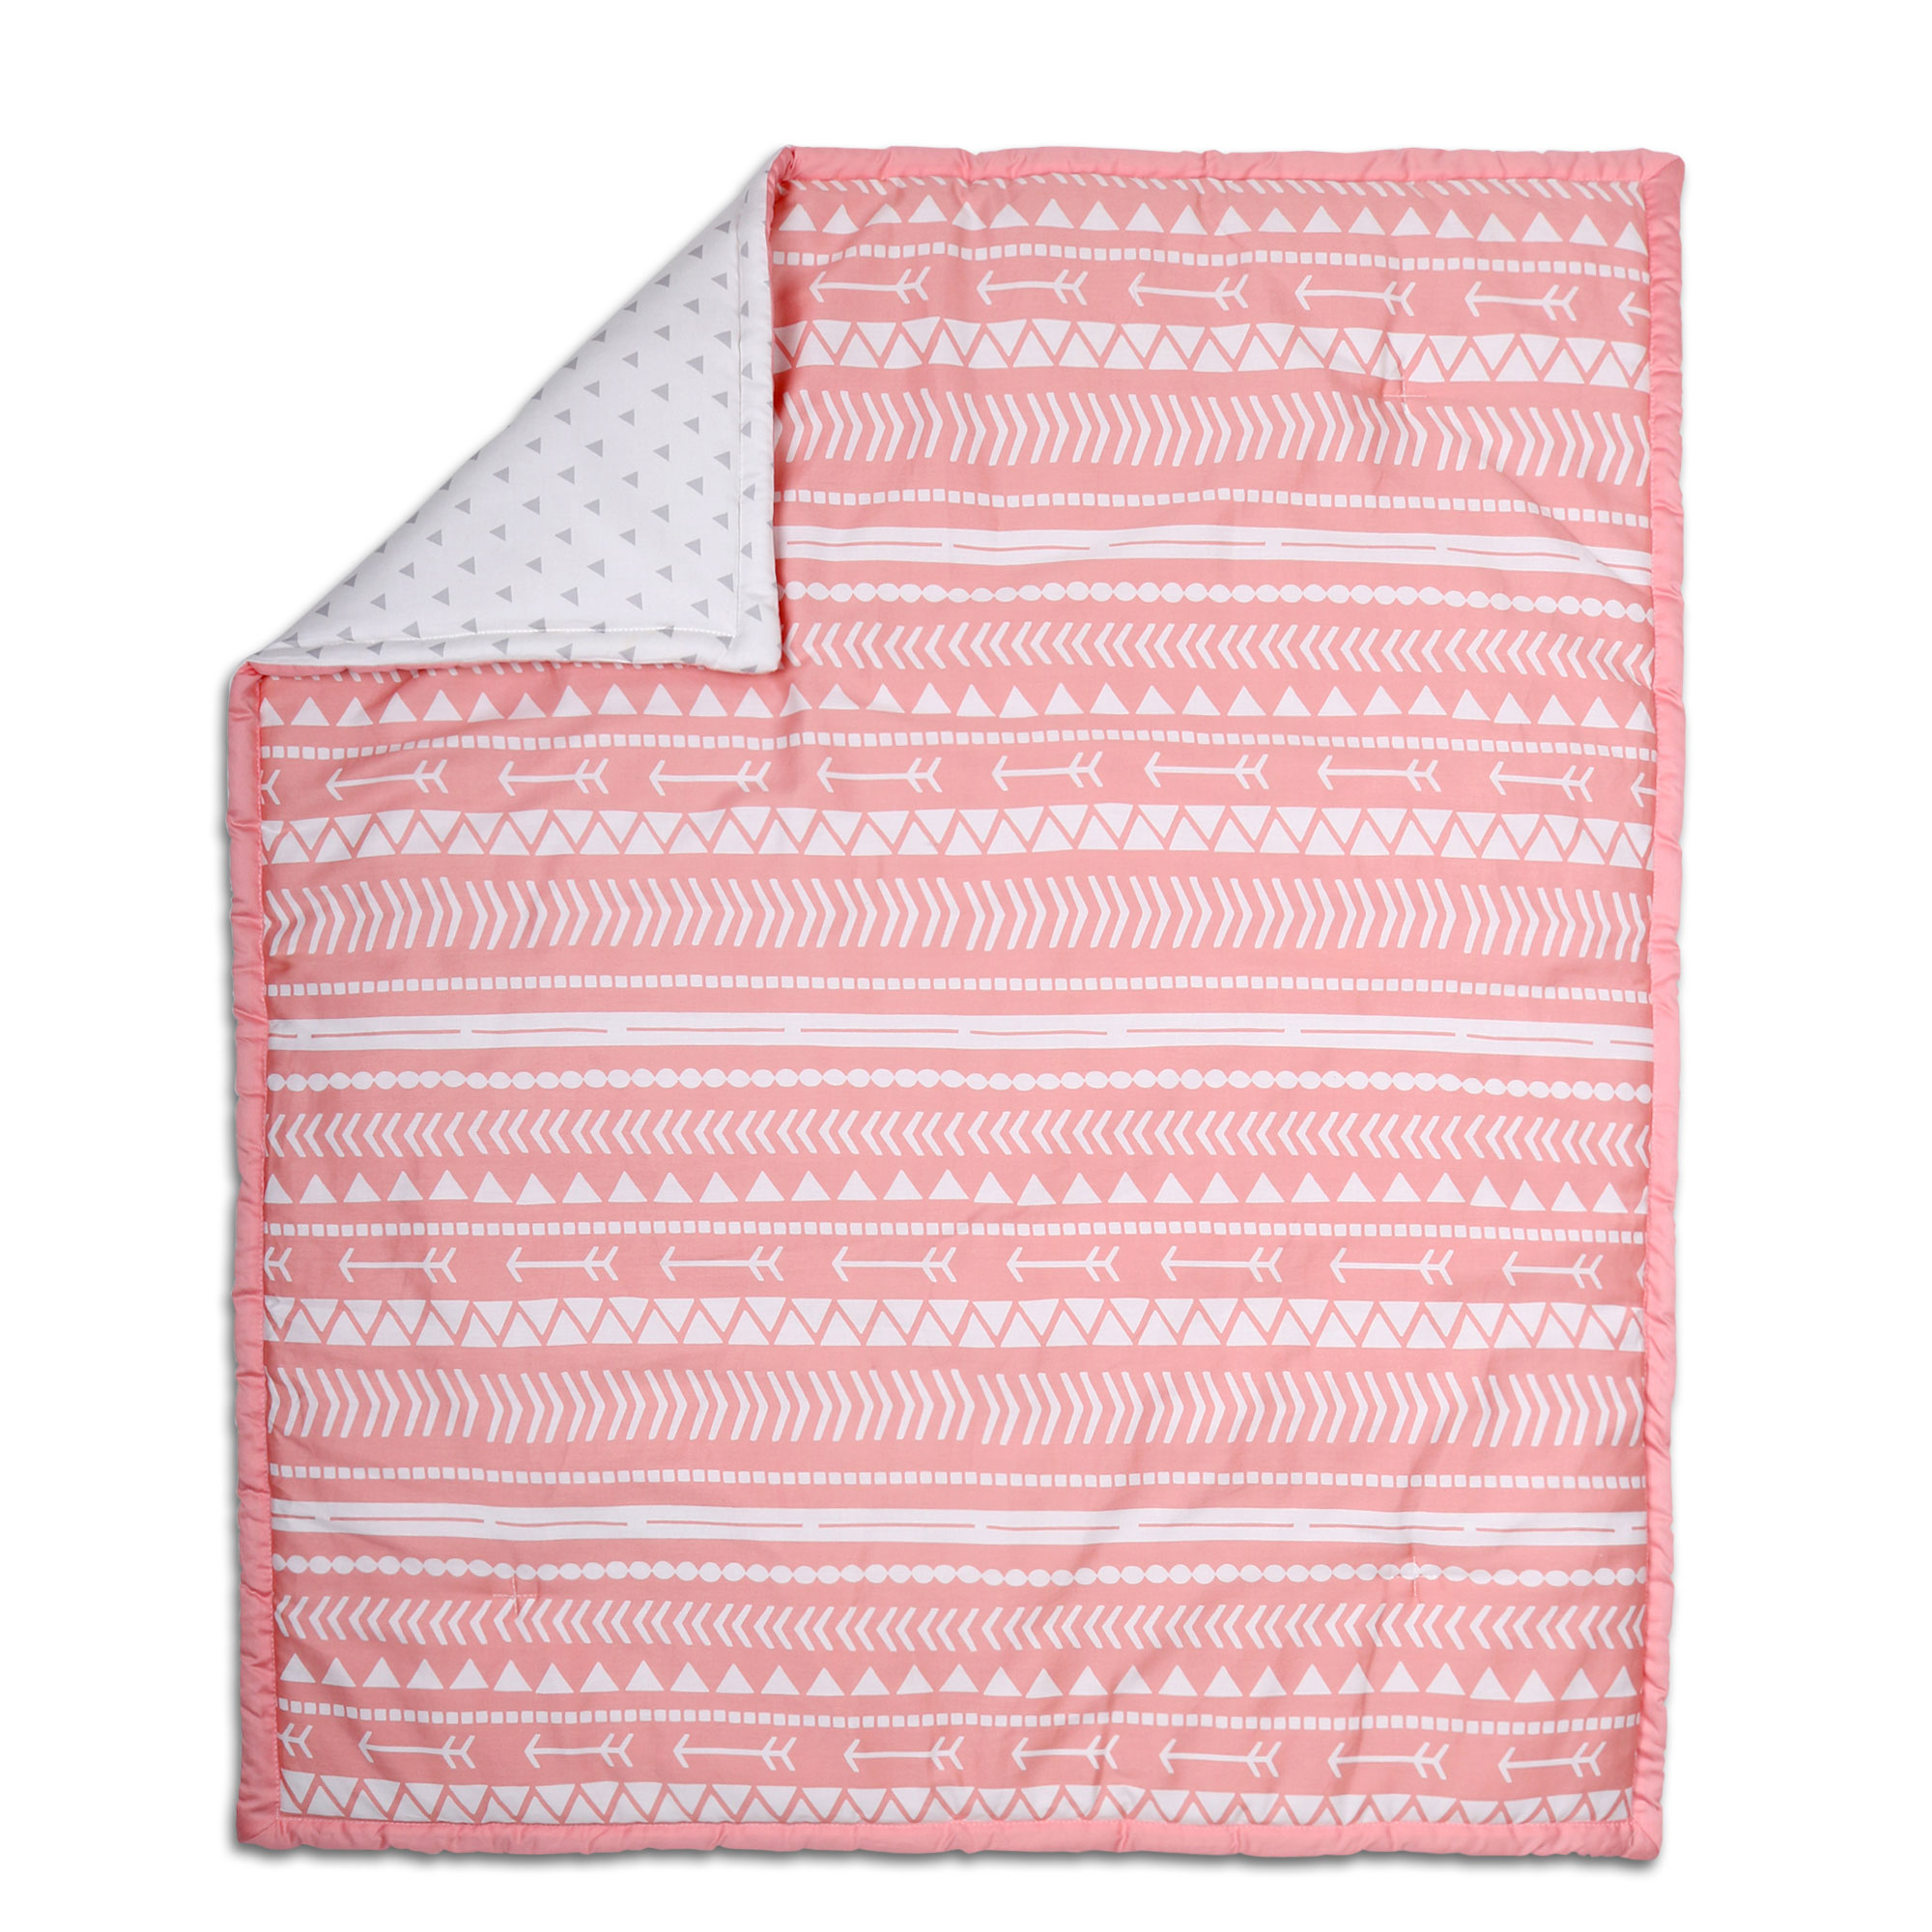 The Peanut Shell Baby Crib Quilt Coral Pink Native American Tribal and Grey Triangle Dot Prints 100% Cotton... by The Peanut Shell